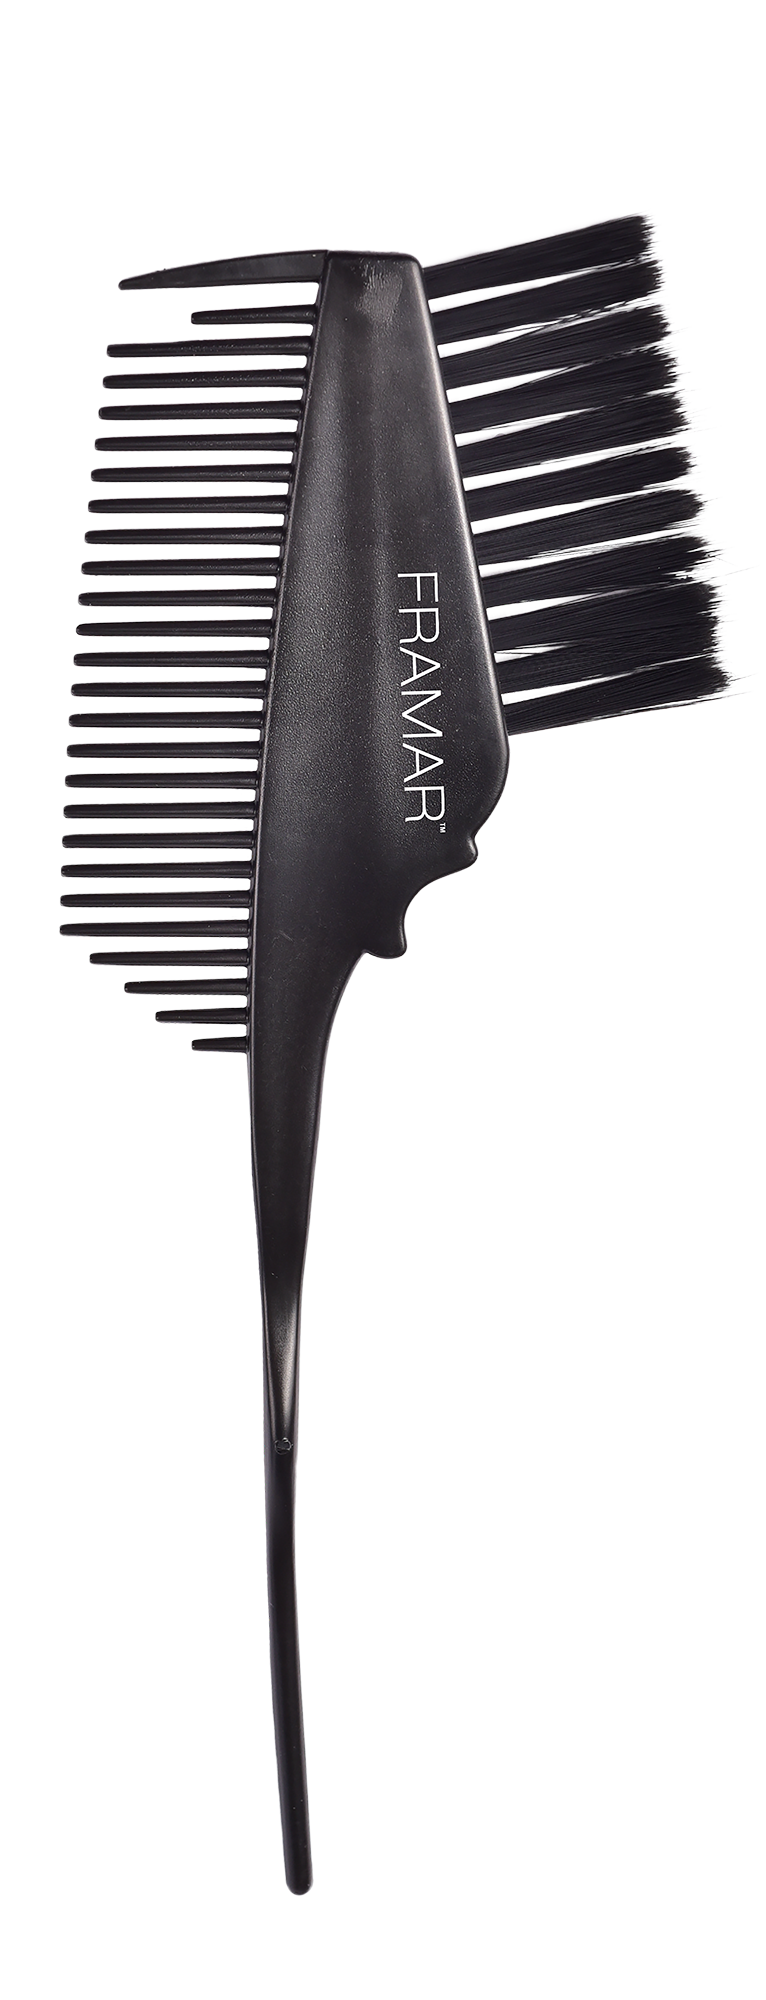 EMPEROR BRUSH FRAMAR - Pinceau de coloration multi-usage avec peigne